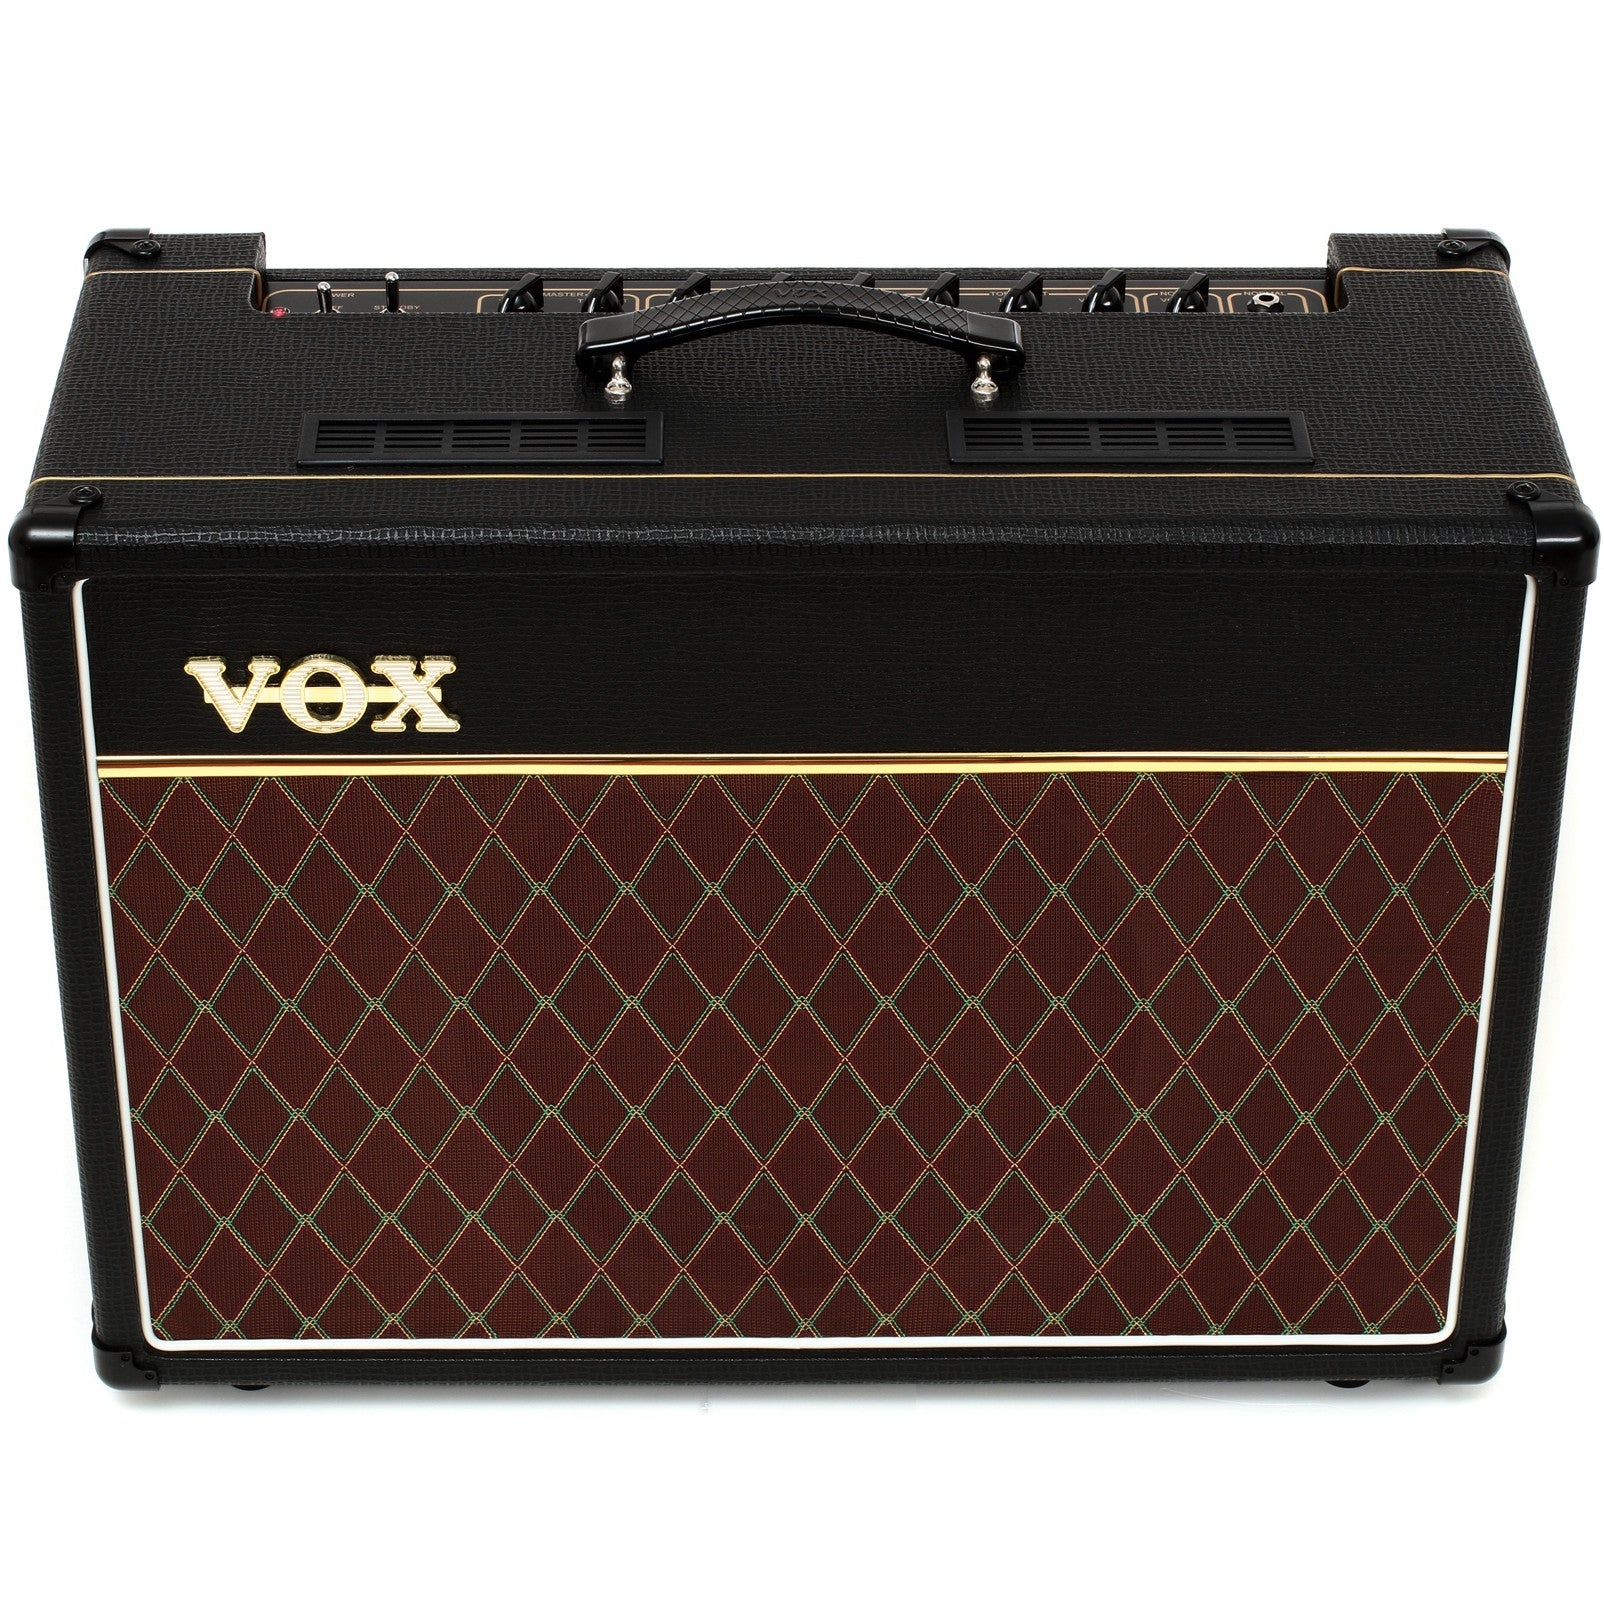 "Vox AC15C1 15-watt 1x12"" Tube Combo Amp 